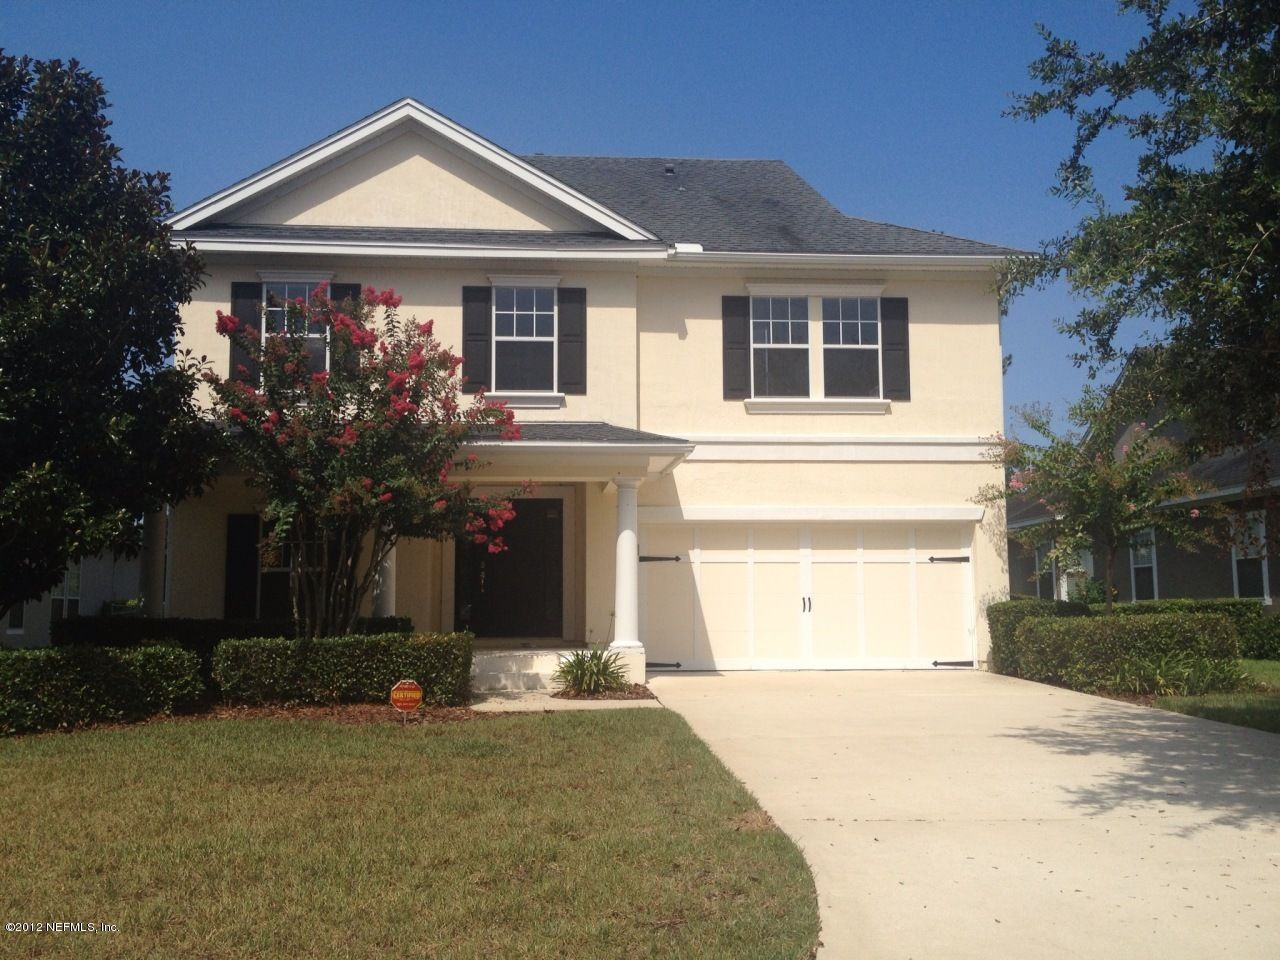 For Sale Or Rent 1516 Drury Ct St Augustine Fl 32092 Contact Lisa Menton For Details 904 923 0678 St Augustine House Styles Menton